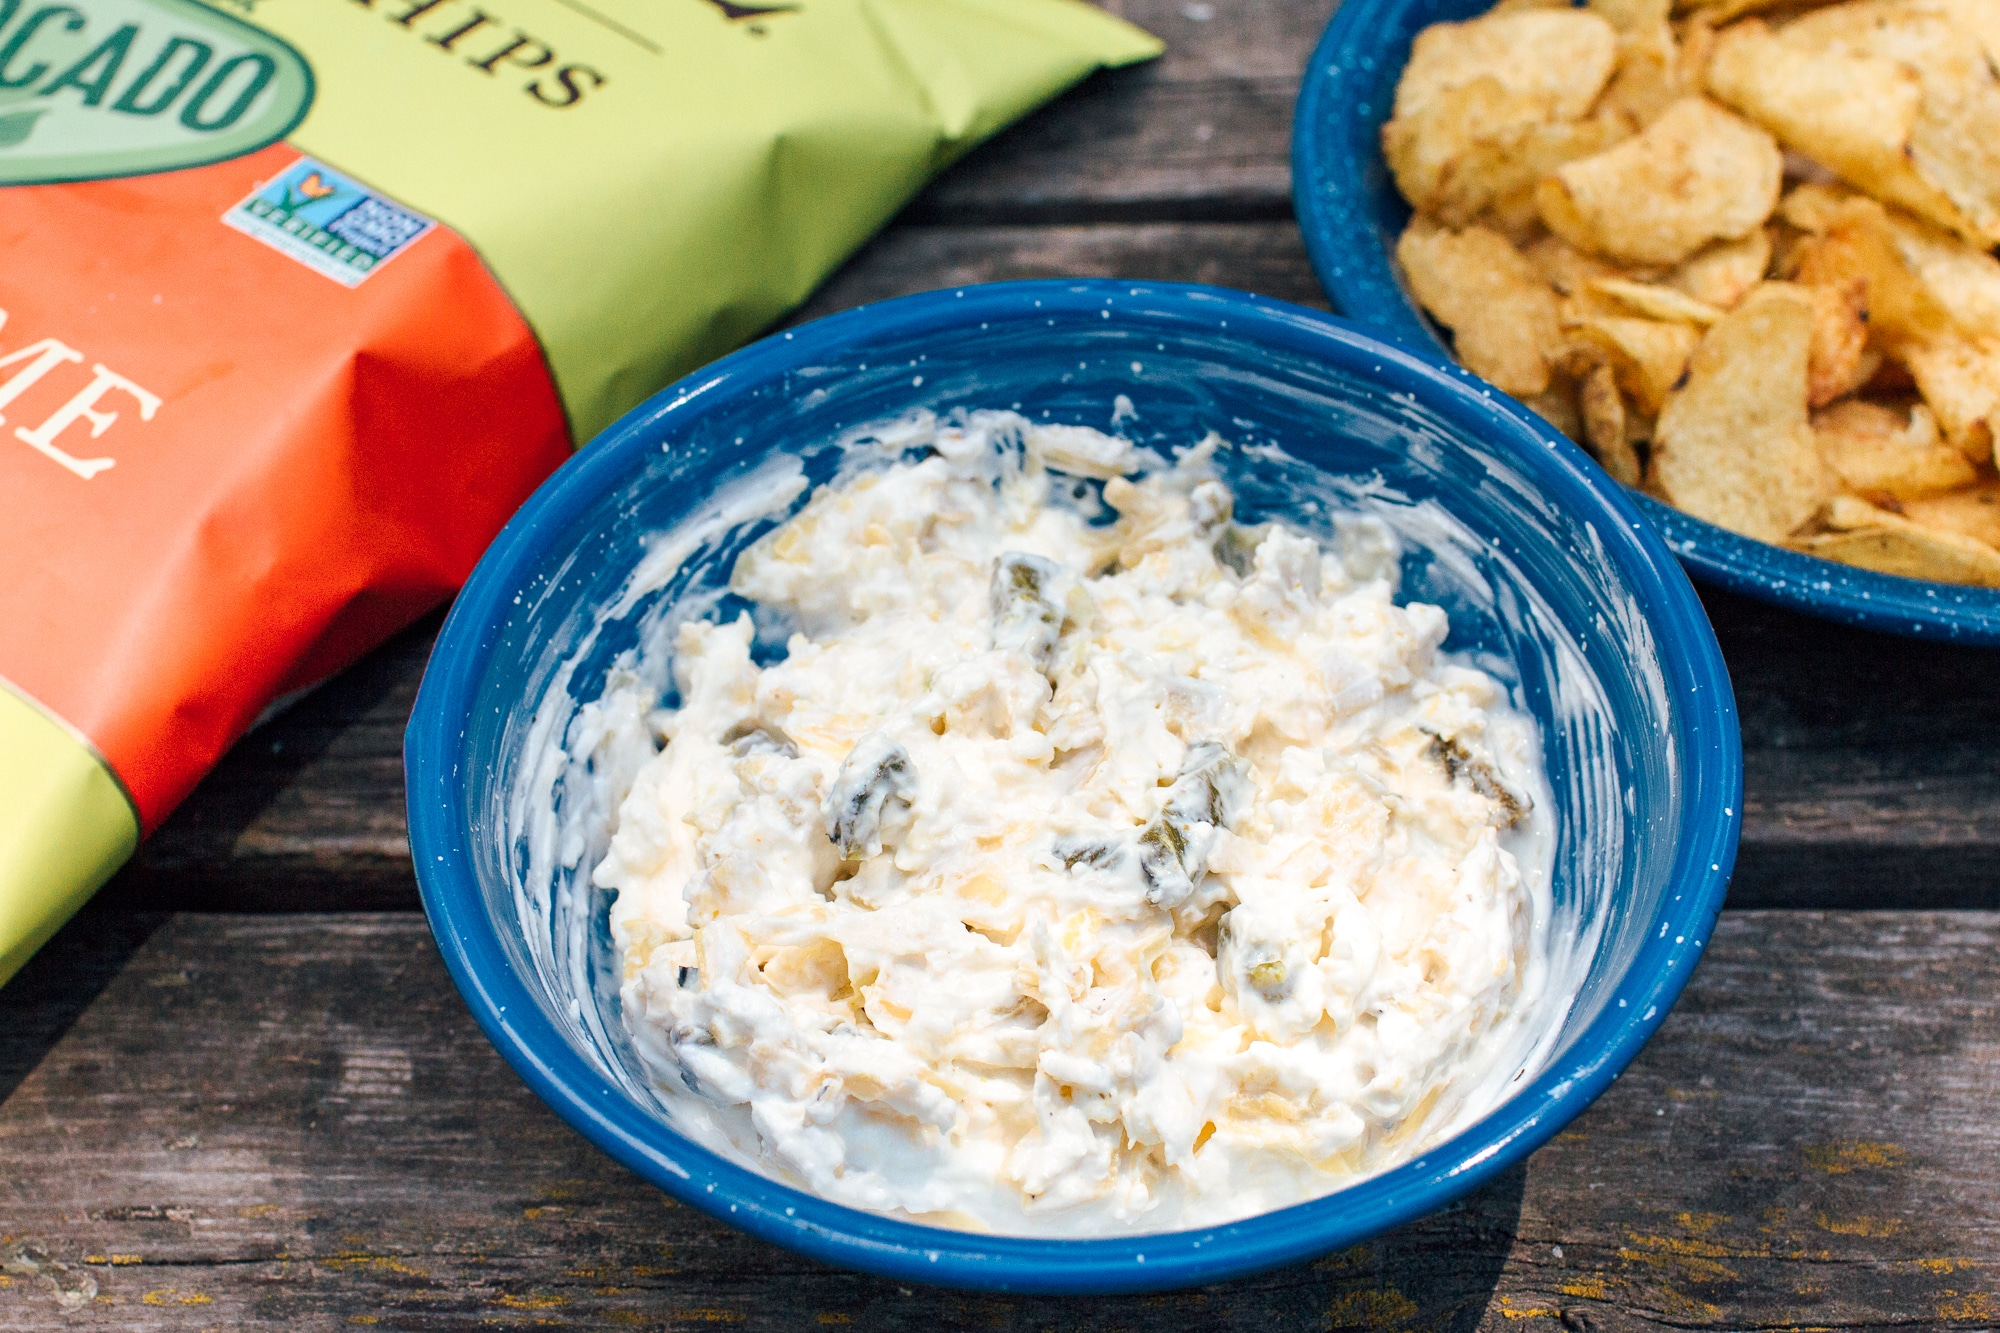 Jalapeno Artichoke dip in a blue enamel bowl on a wooden surface.